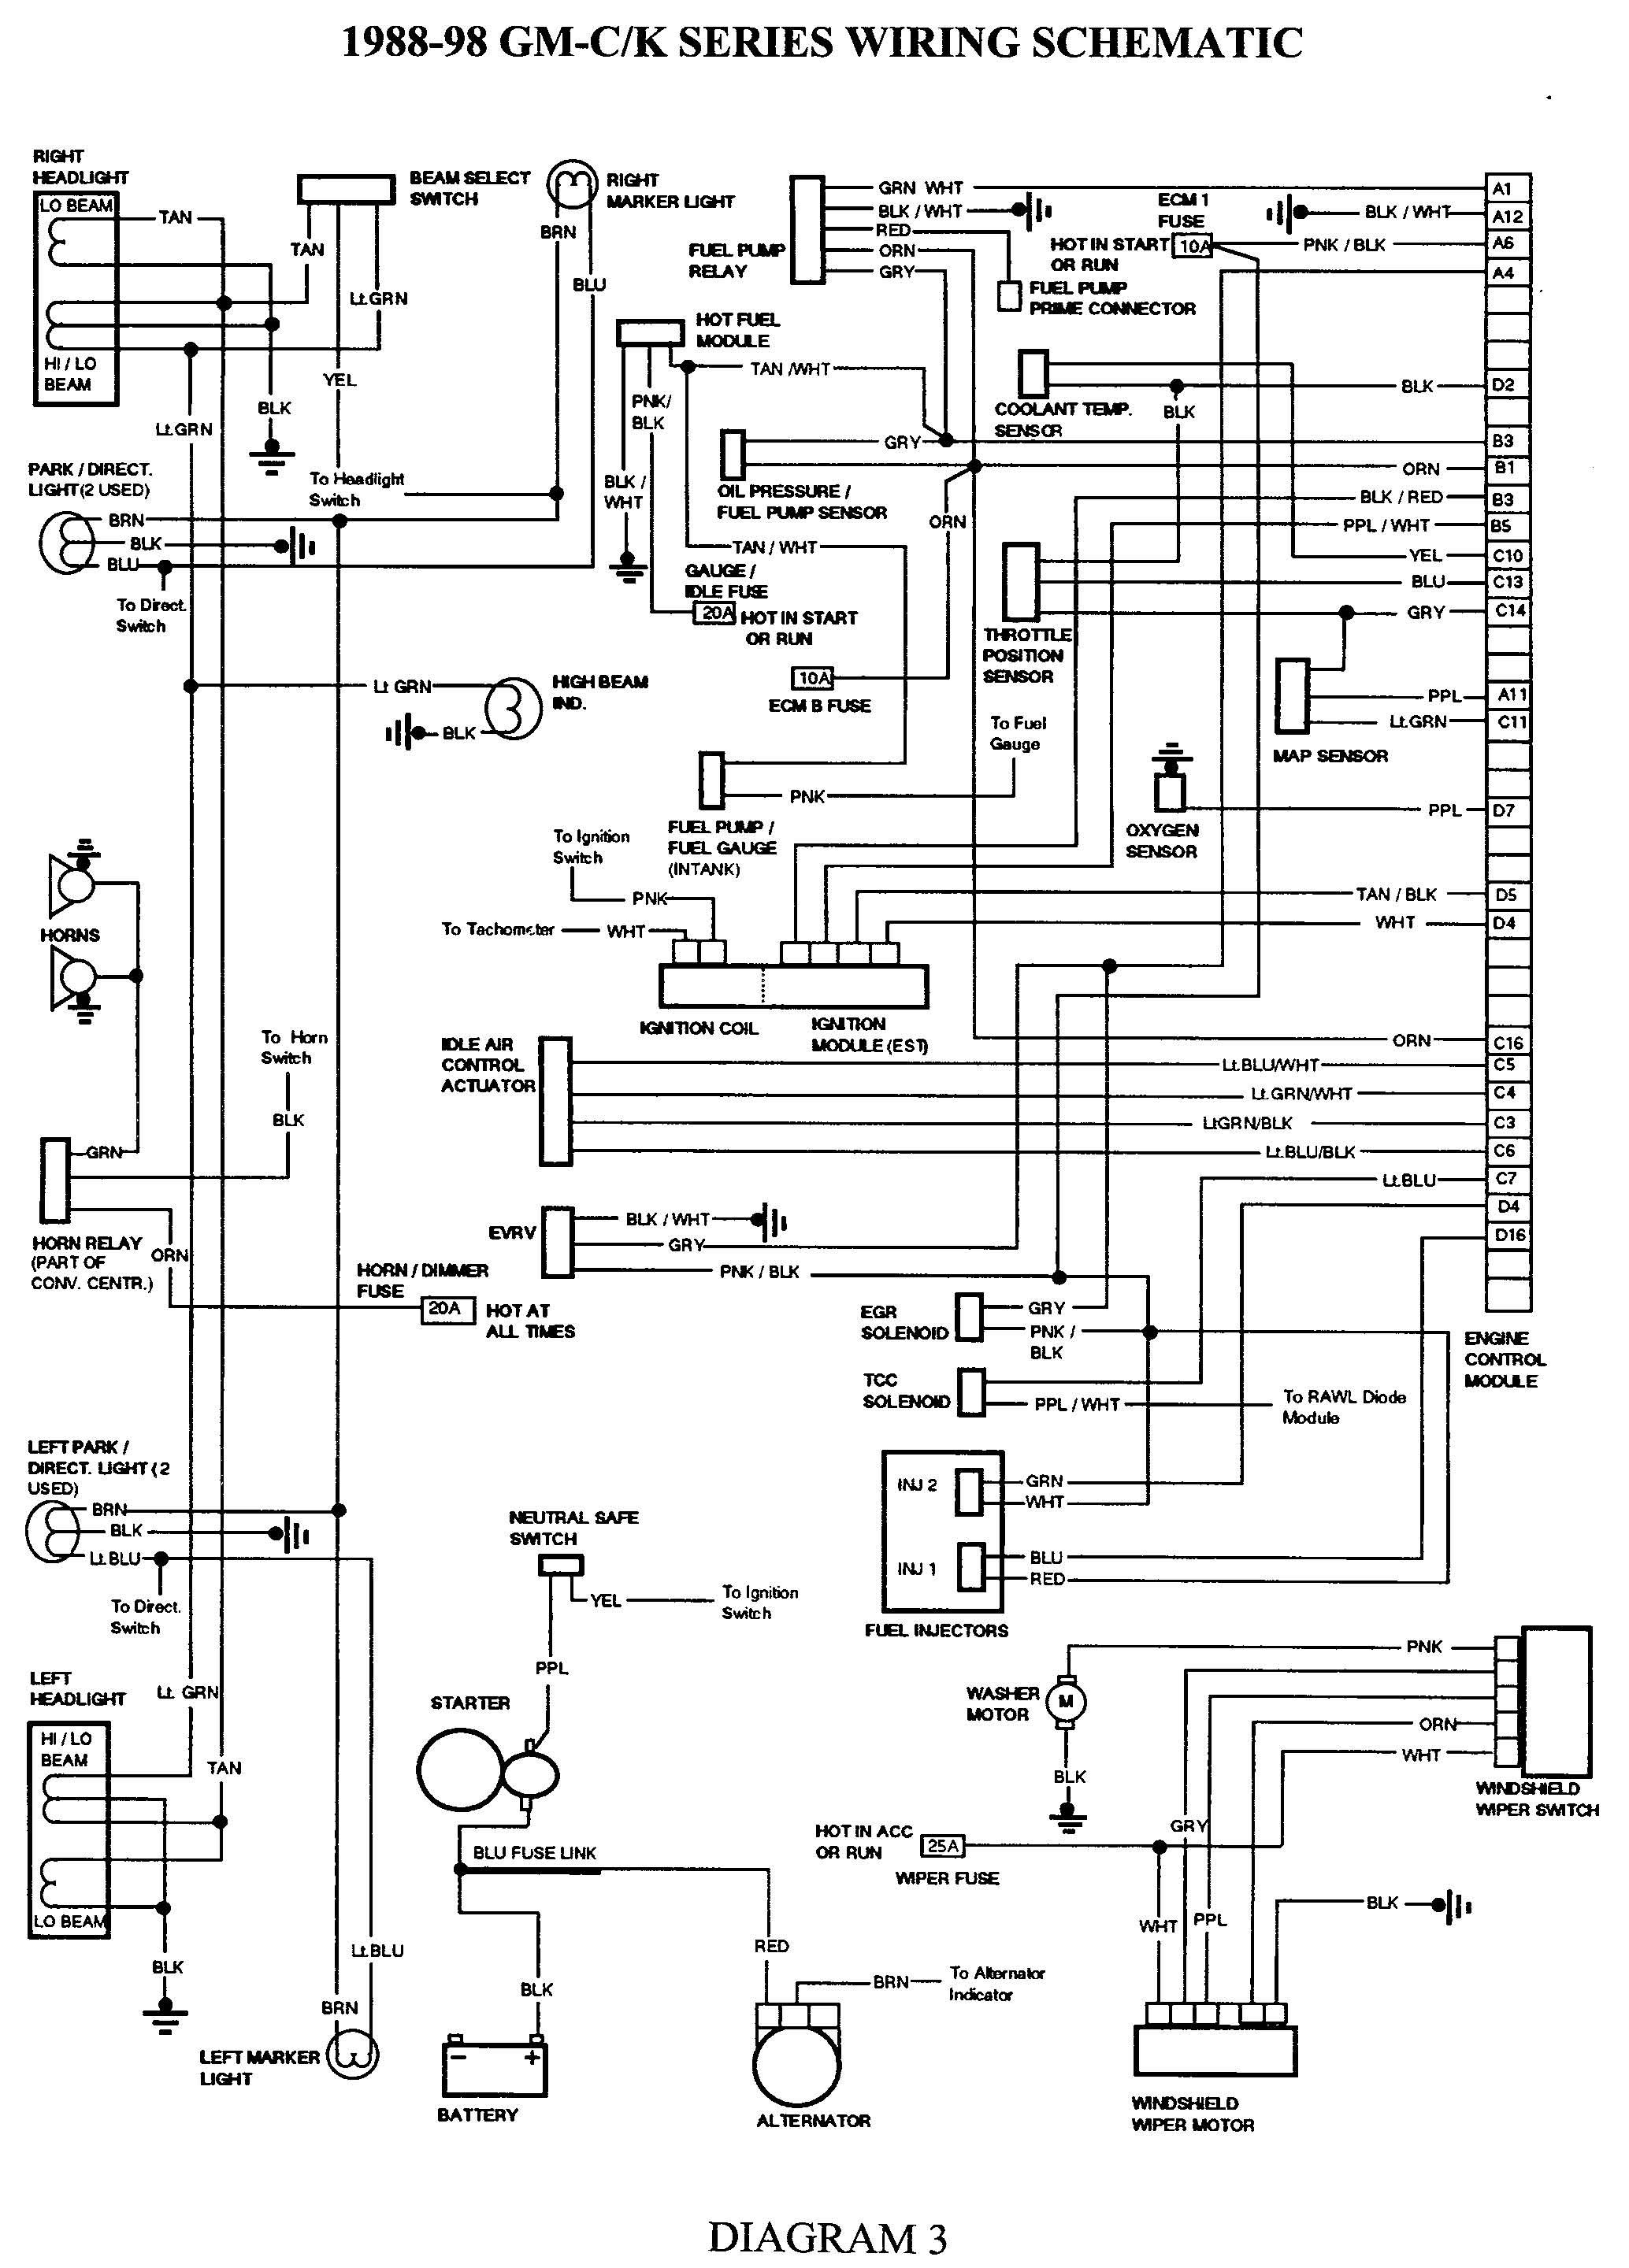 gmc truck wiring diagrams on gm wiring harness diagram 88 98 kc 1957 chevy truck wiring harness diagram free [ 2068 x 2880 Pixel ]